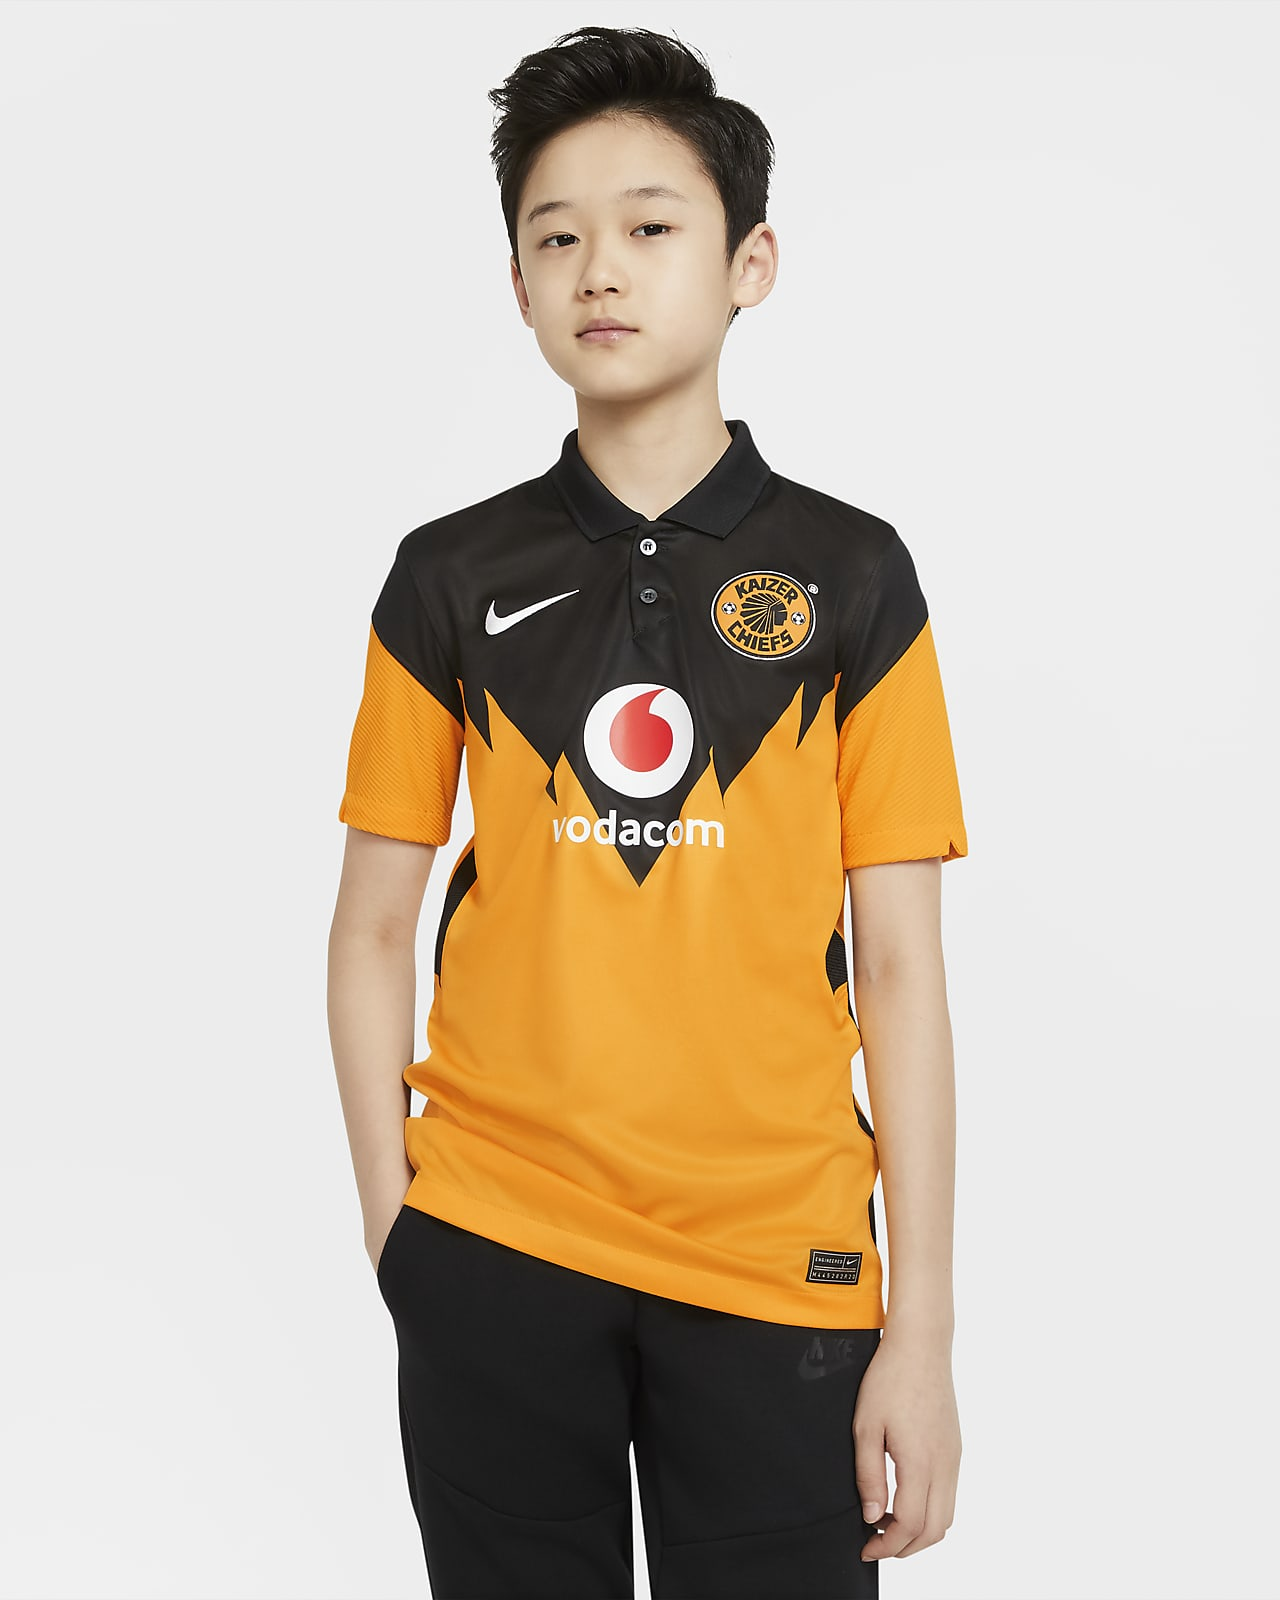 Kaizer Chiefs F.C. 2020/21 Stadium Home Older Kids' Football Shirt